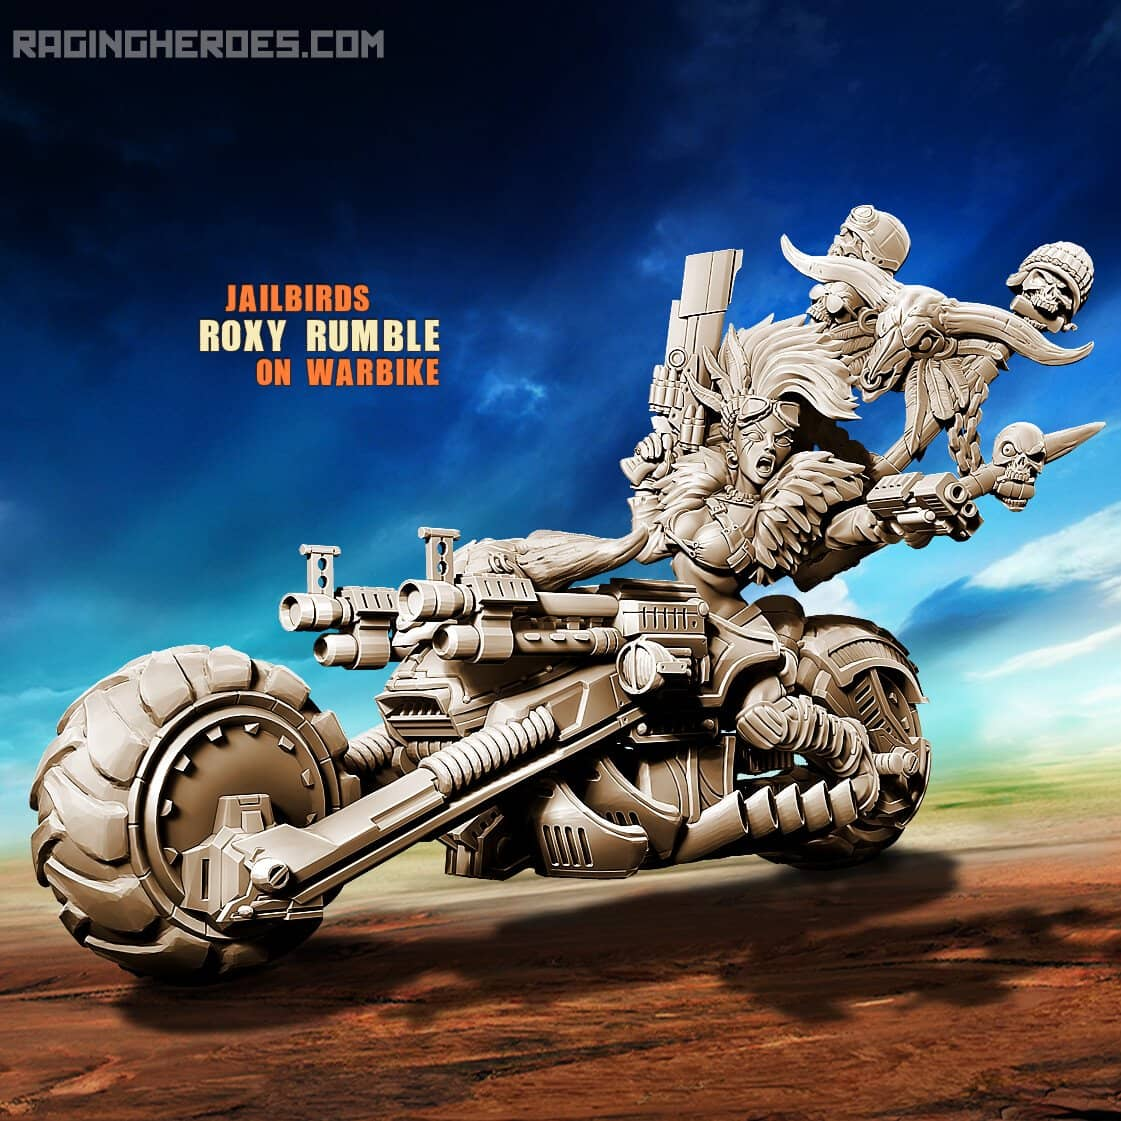 Roxy Rumble on Warbike (JB - SF) - Raging Heroes